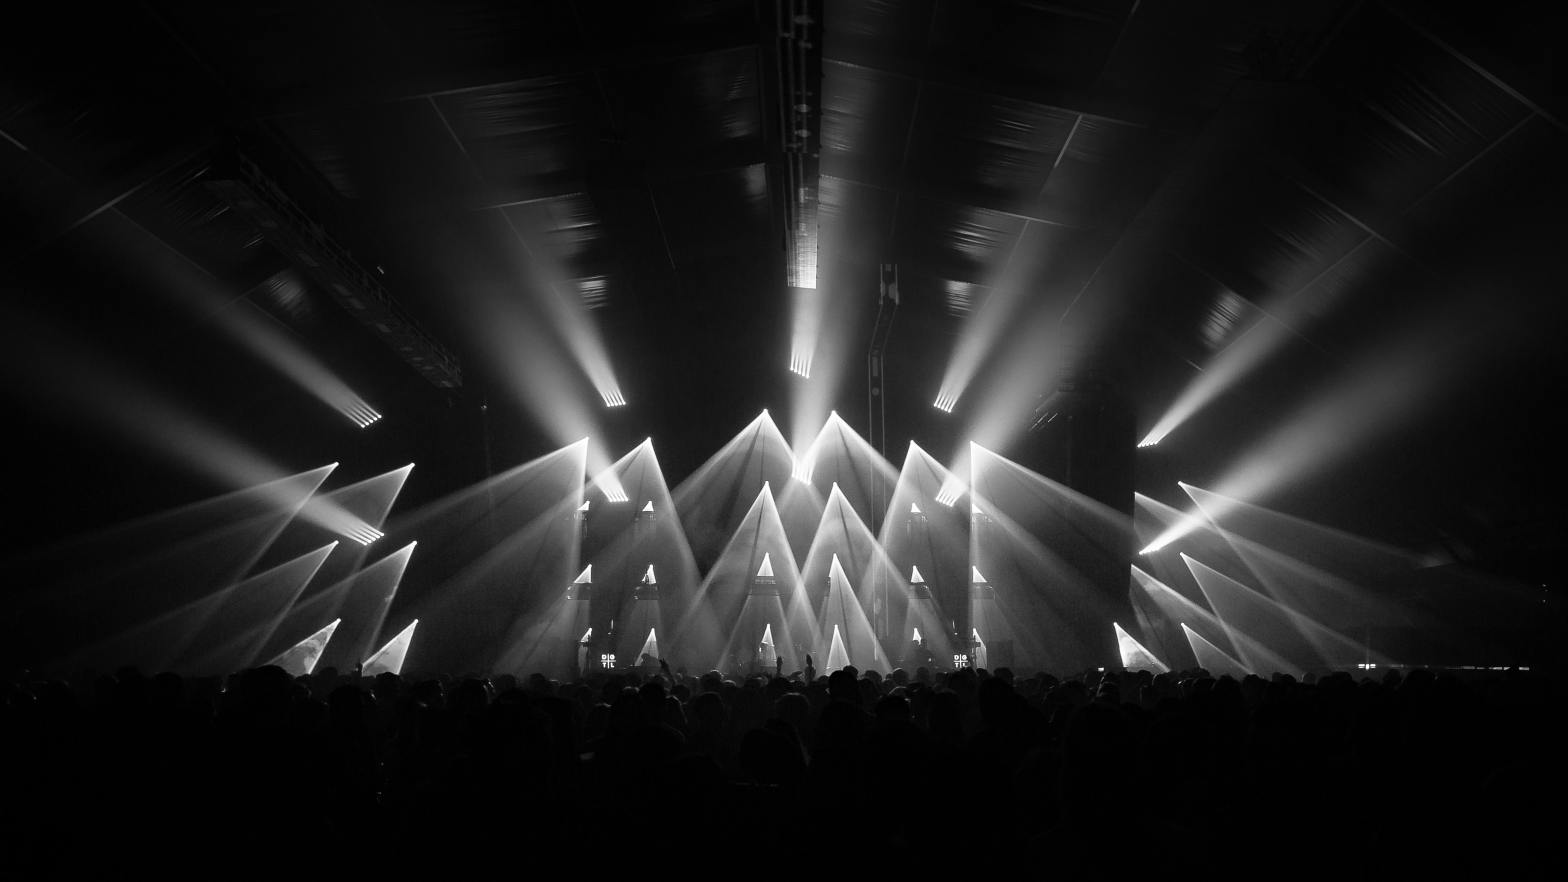 grayscale photo of stage with lights